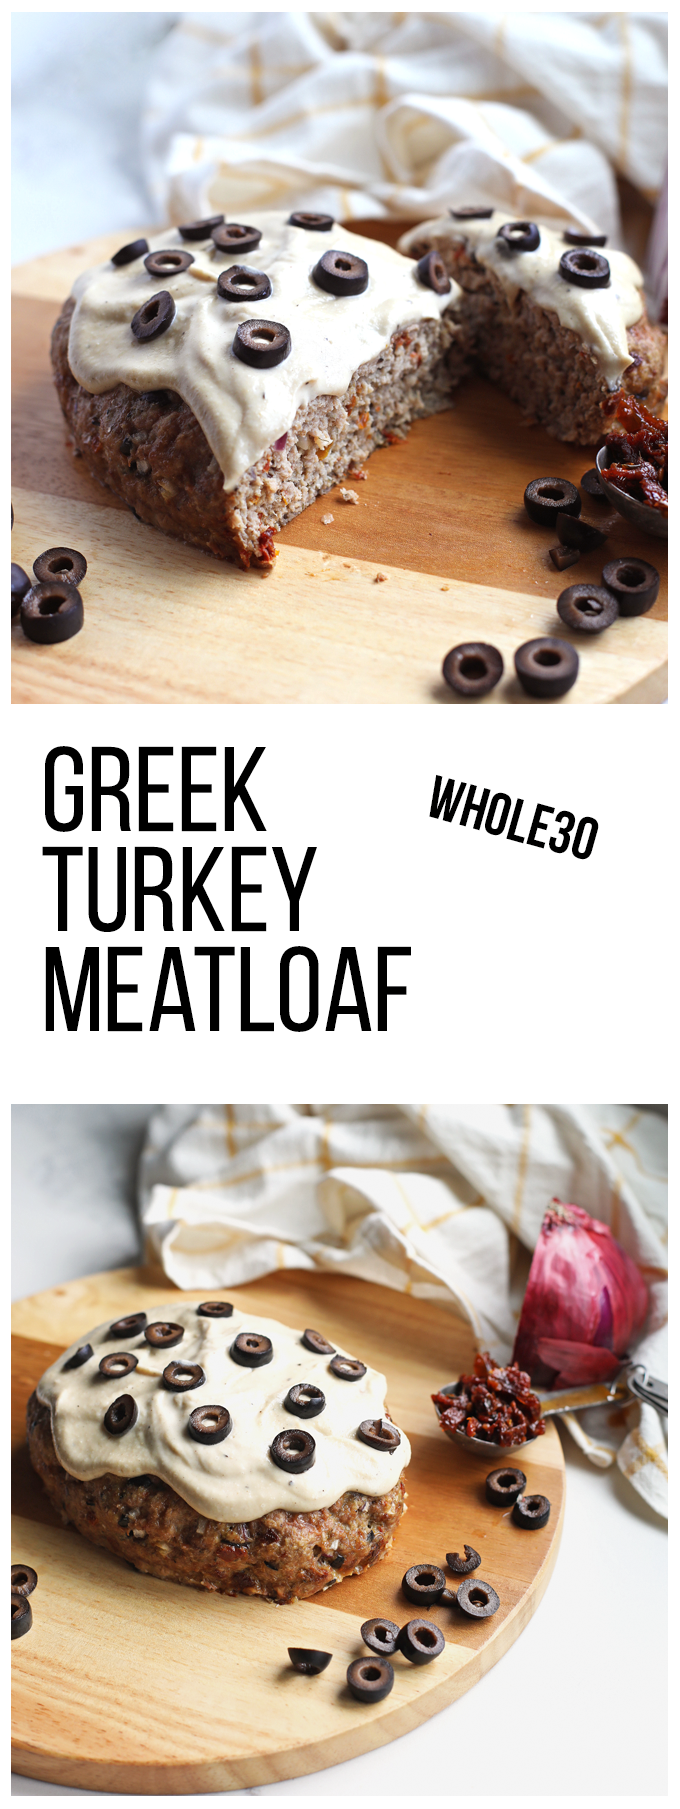 This Greek Turkey Meatloaf is whole30 compliant and super easy to whip together any night of the week!